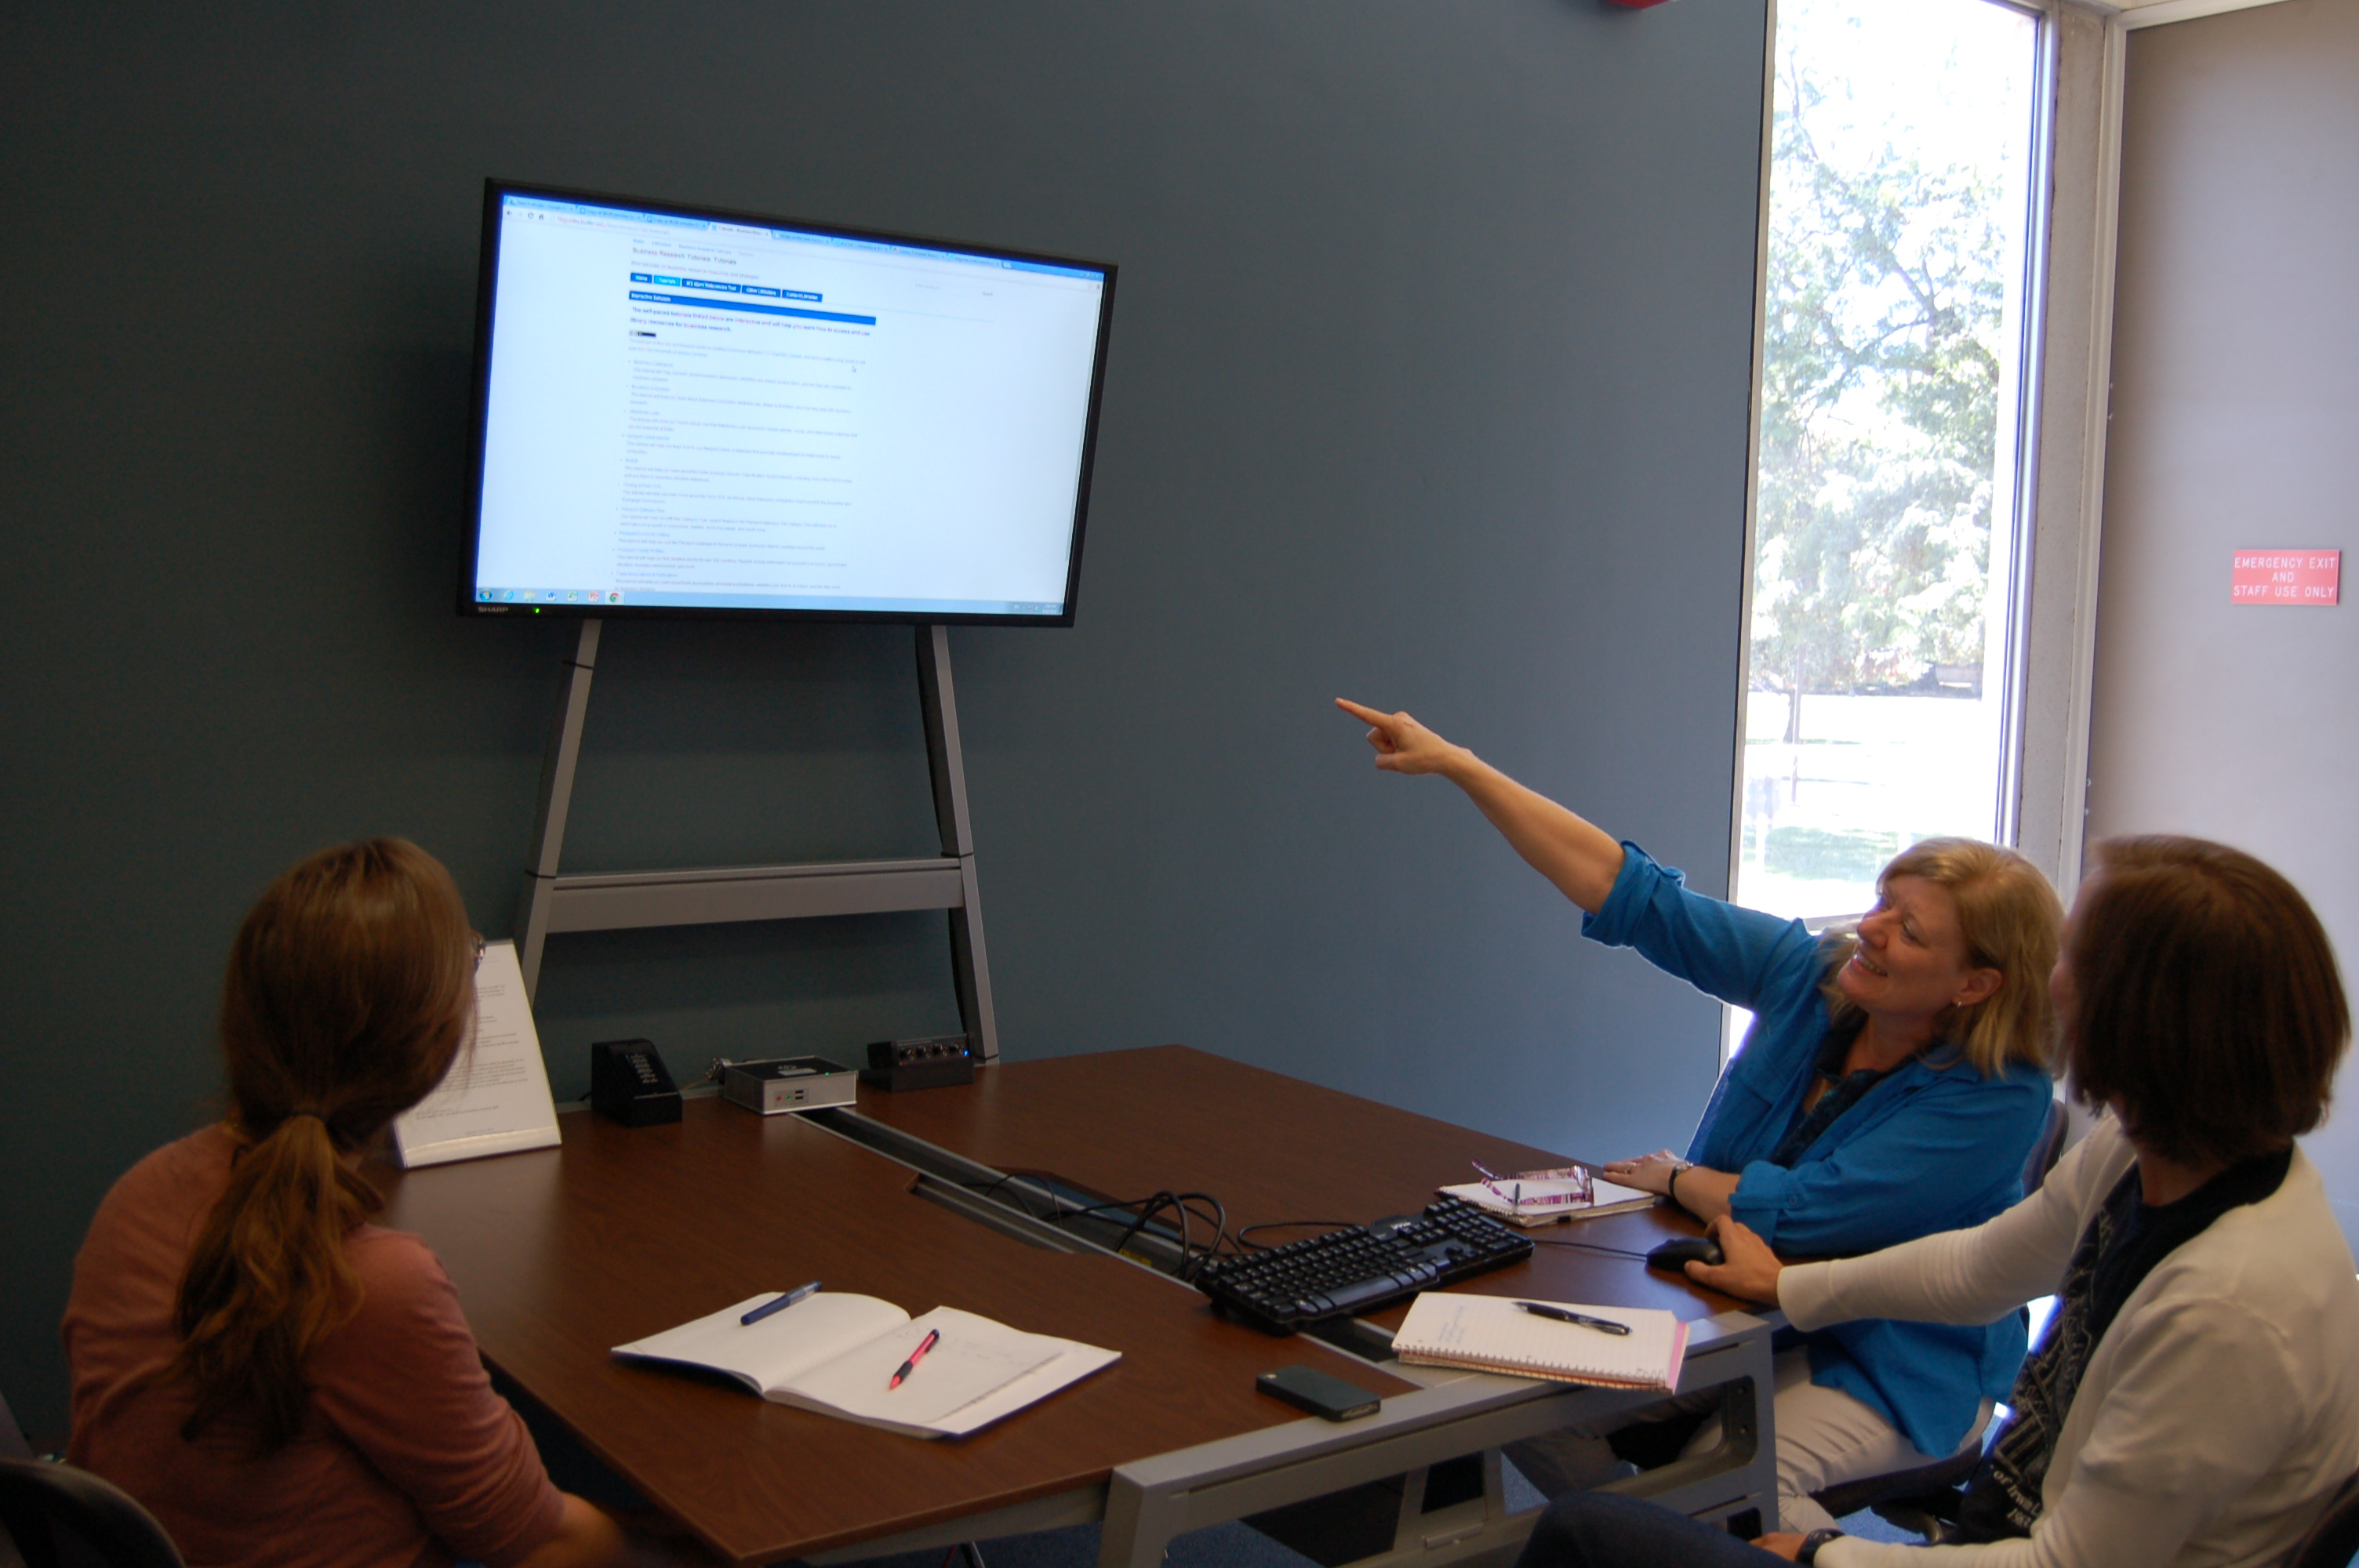 Patrons using the collaborative work station table and attached tv monitor